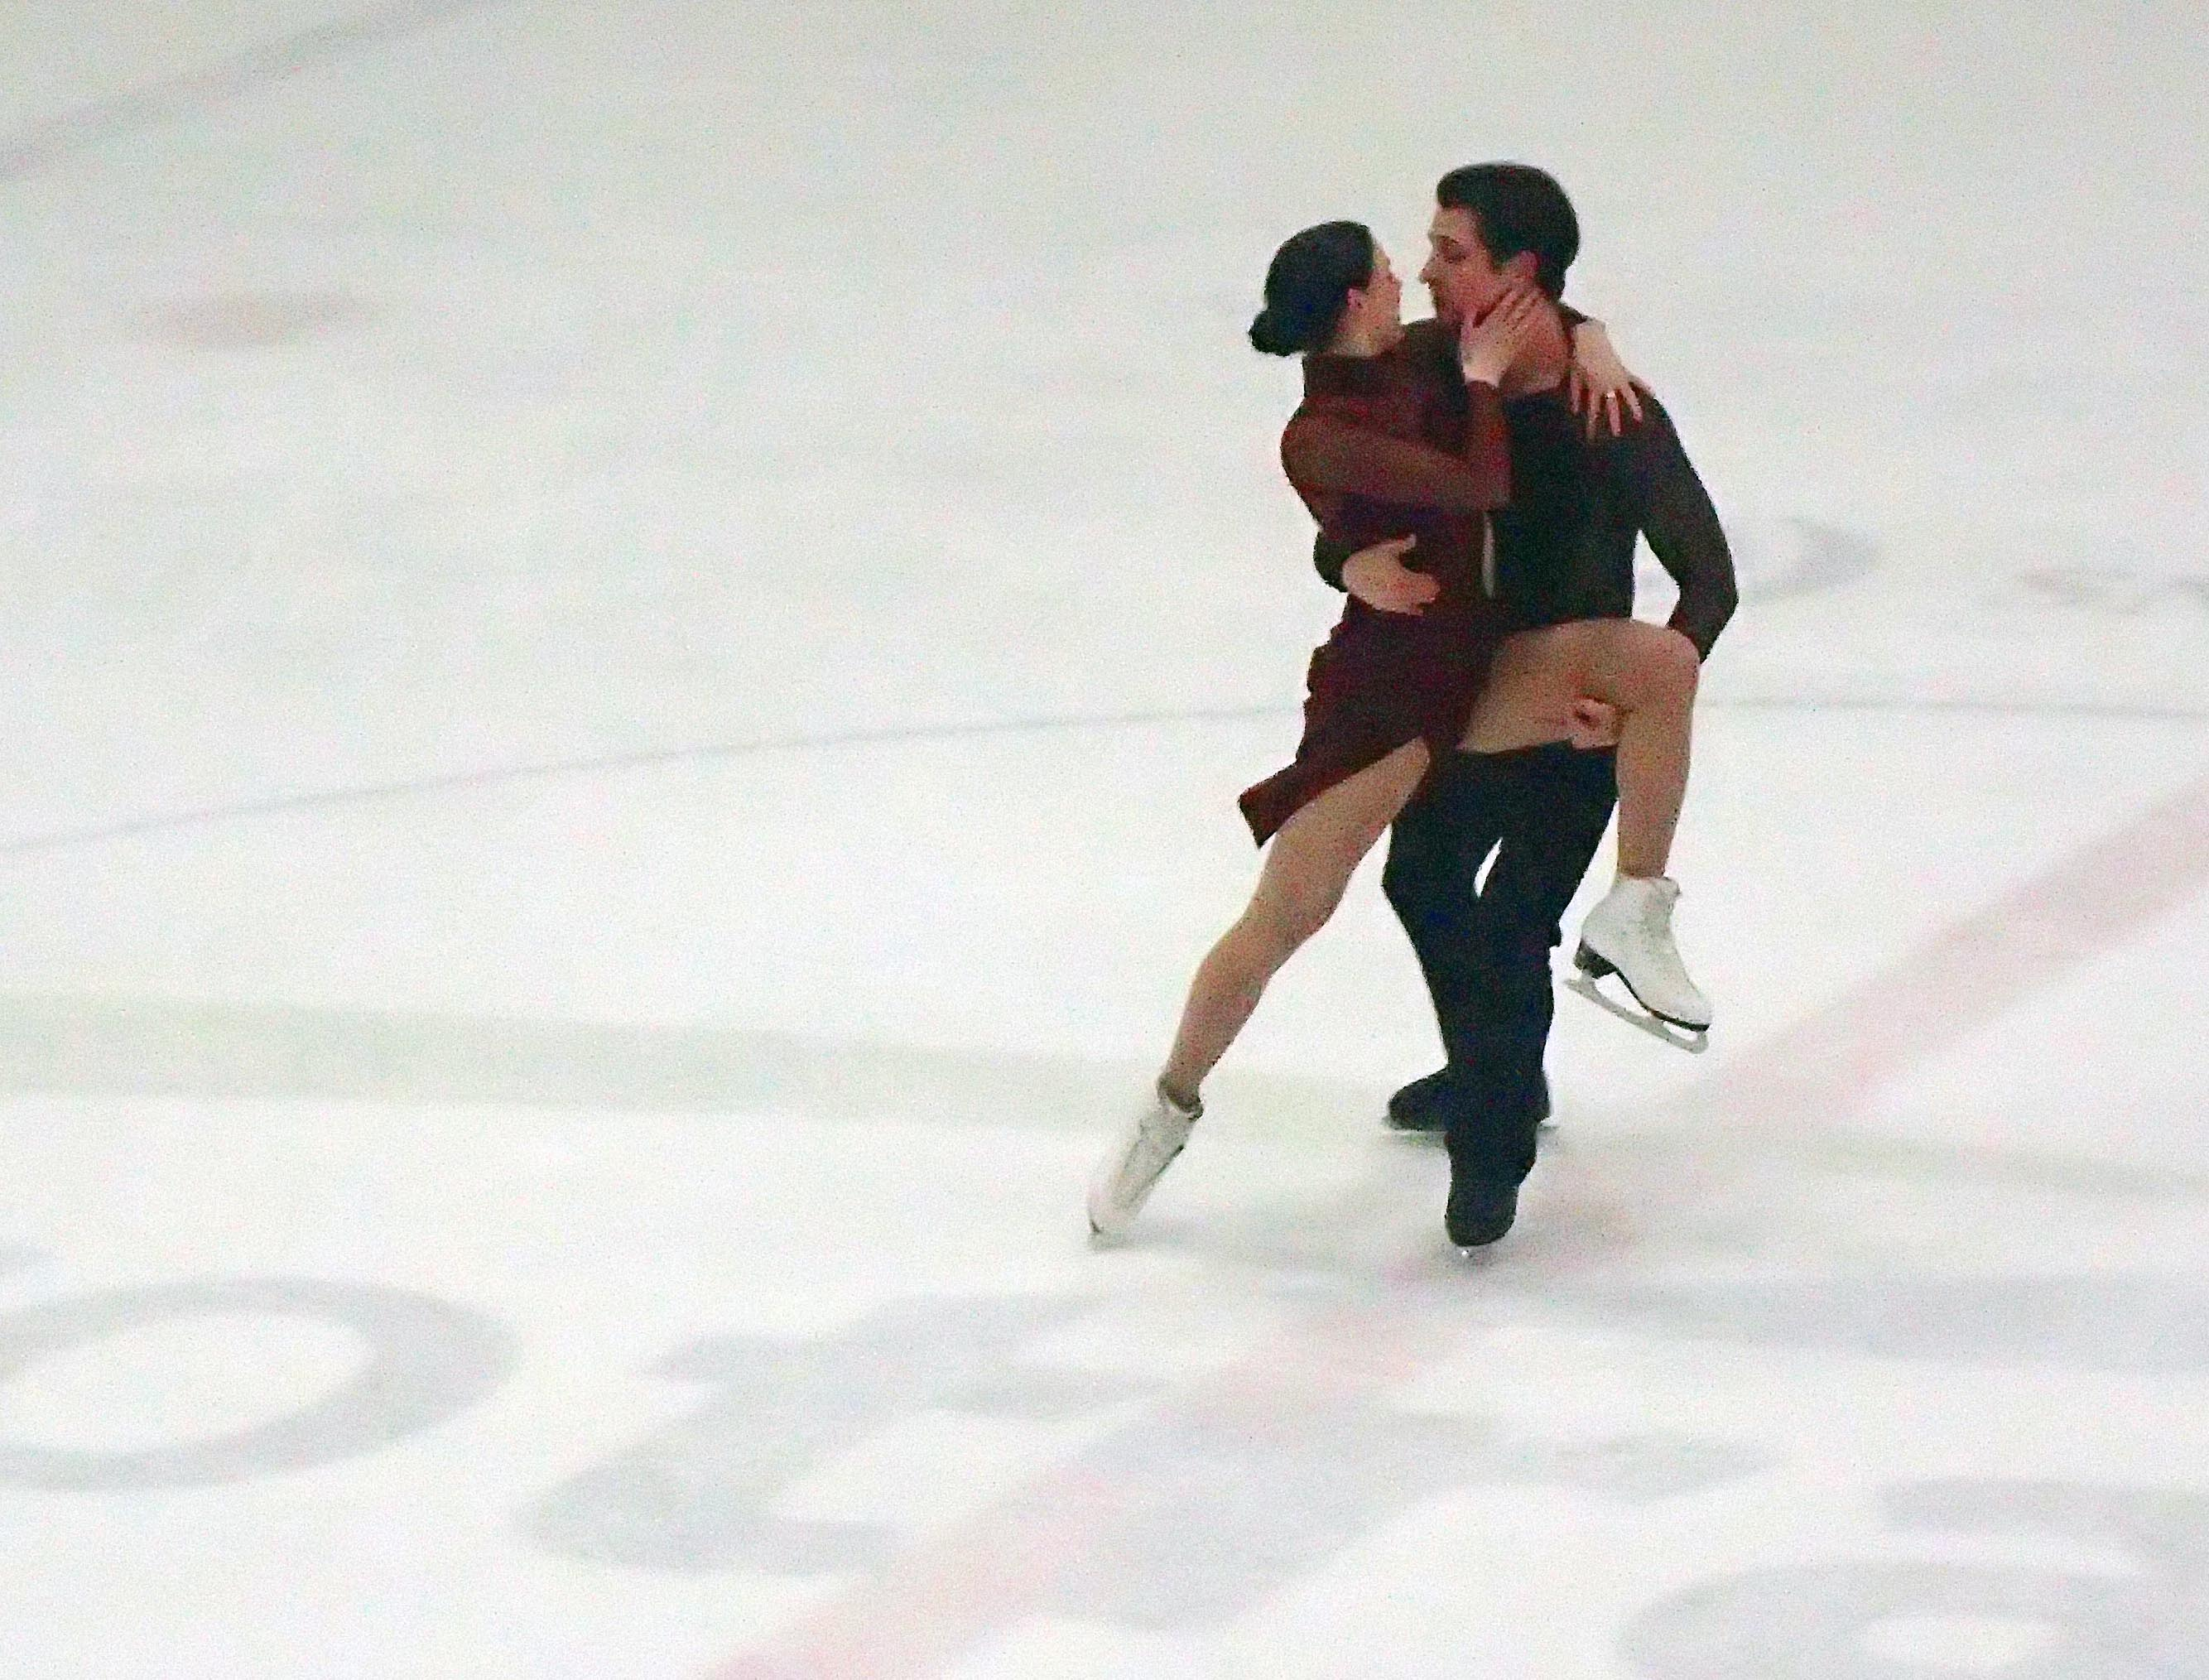 Tessa Virtue and Scott Moir win gold in their final Olympic skate